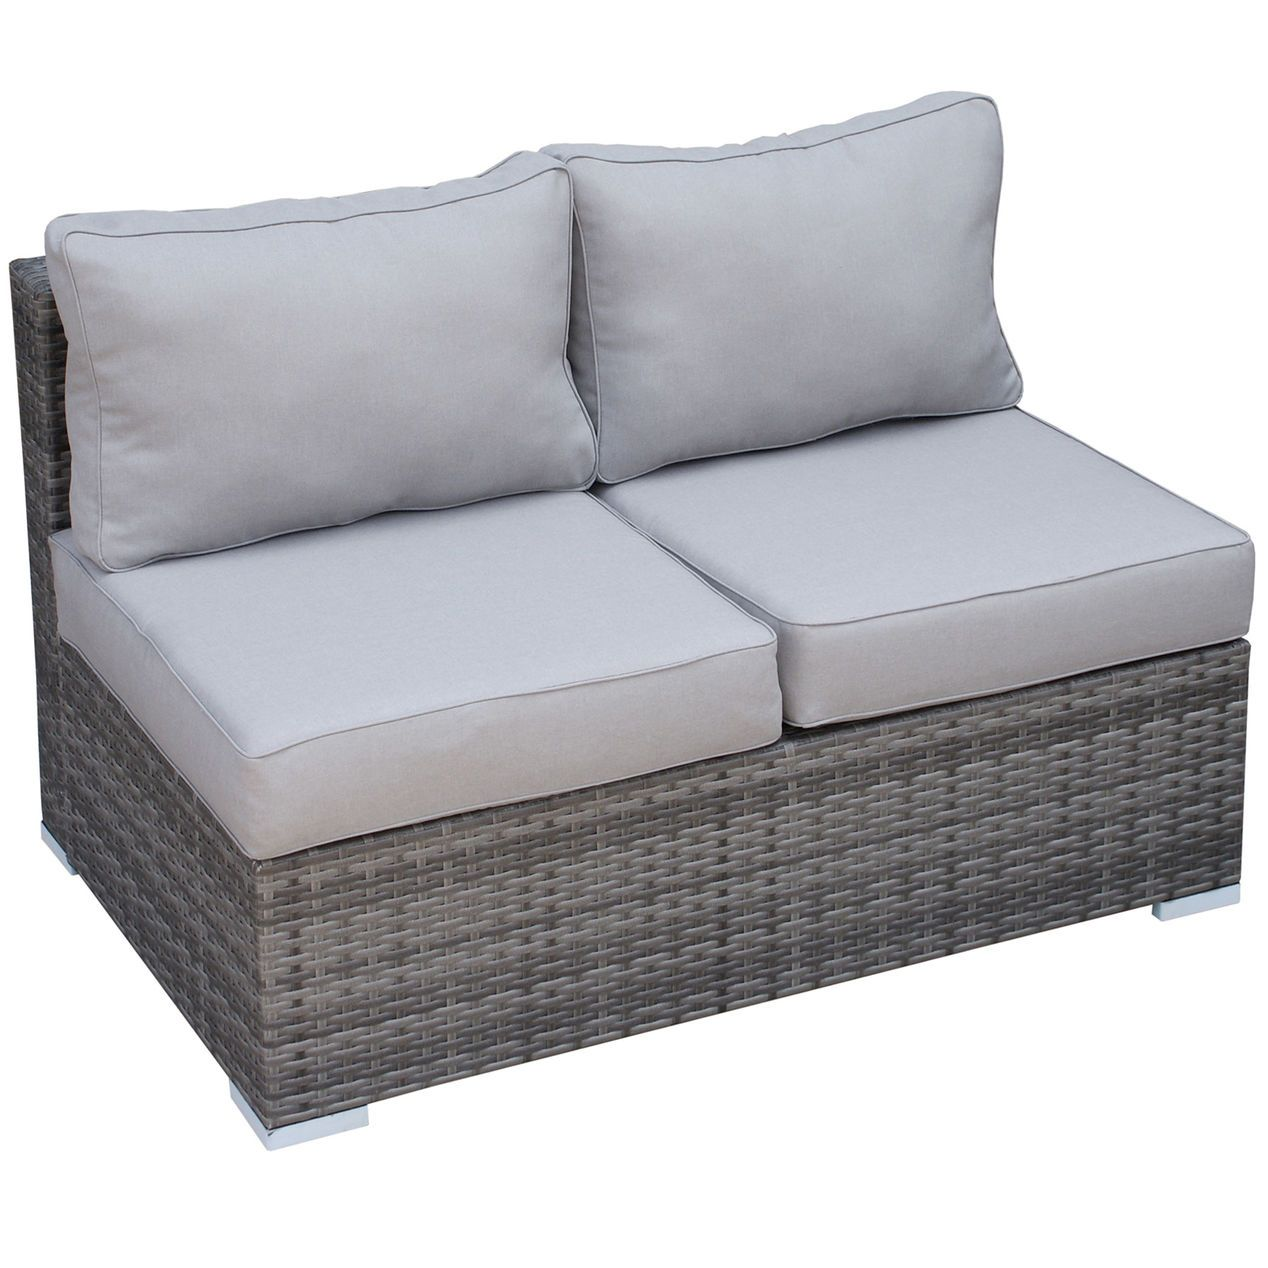 Sensational Weston Ii Wicker Loveseat Zoom Dallas Apt In 2019 Wicker Pabps2019 Chair Design Images Pabps2019Com